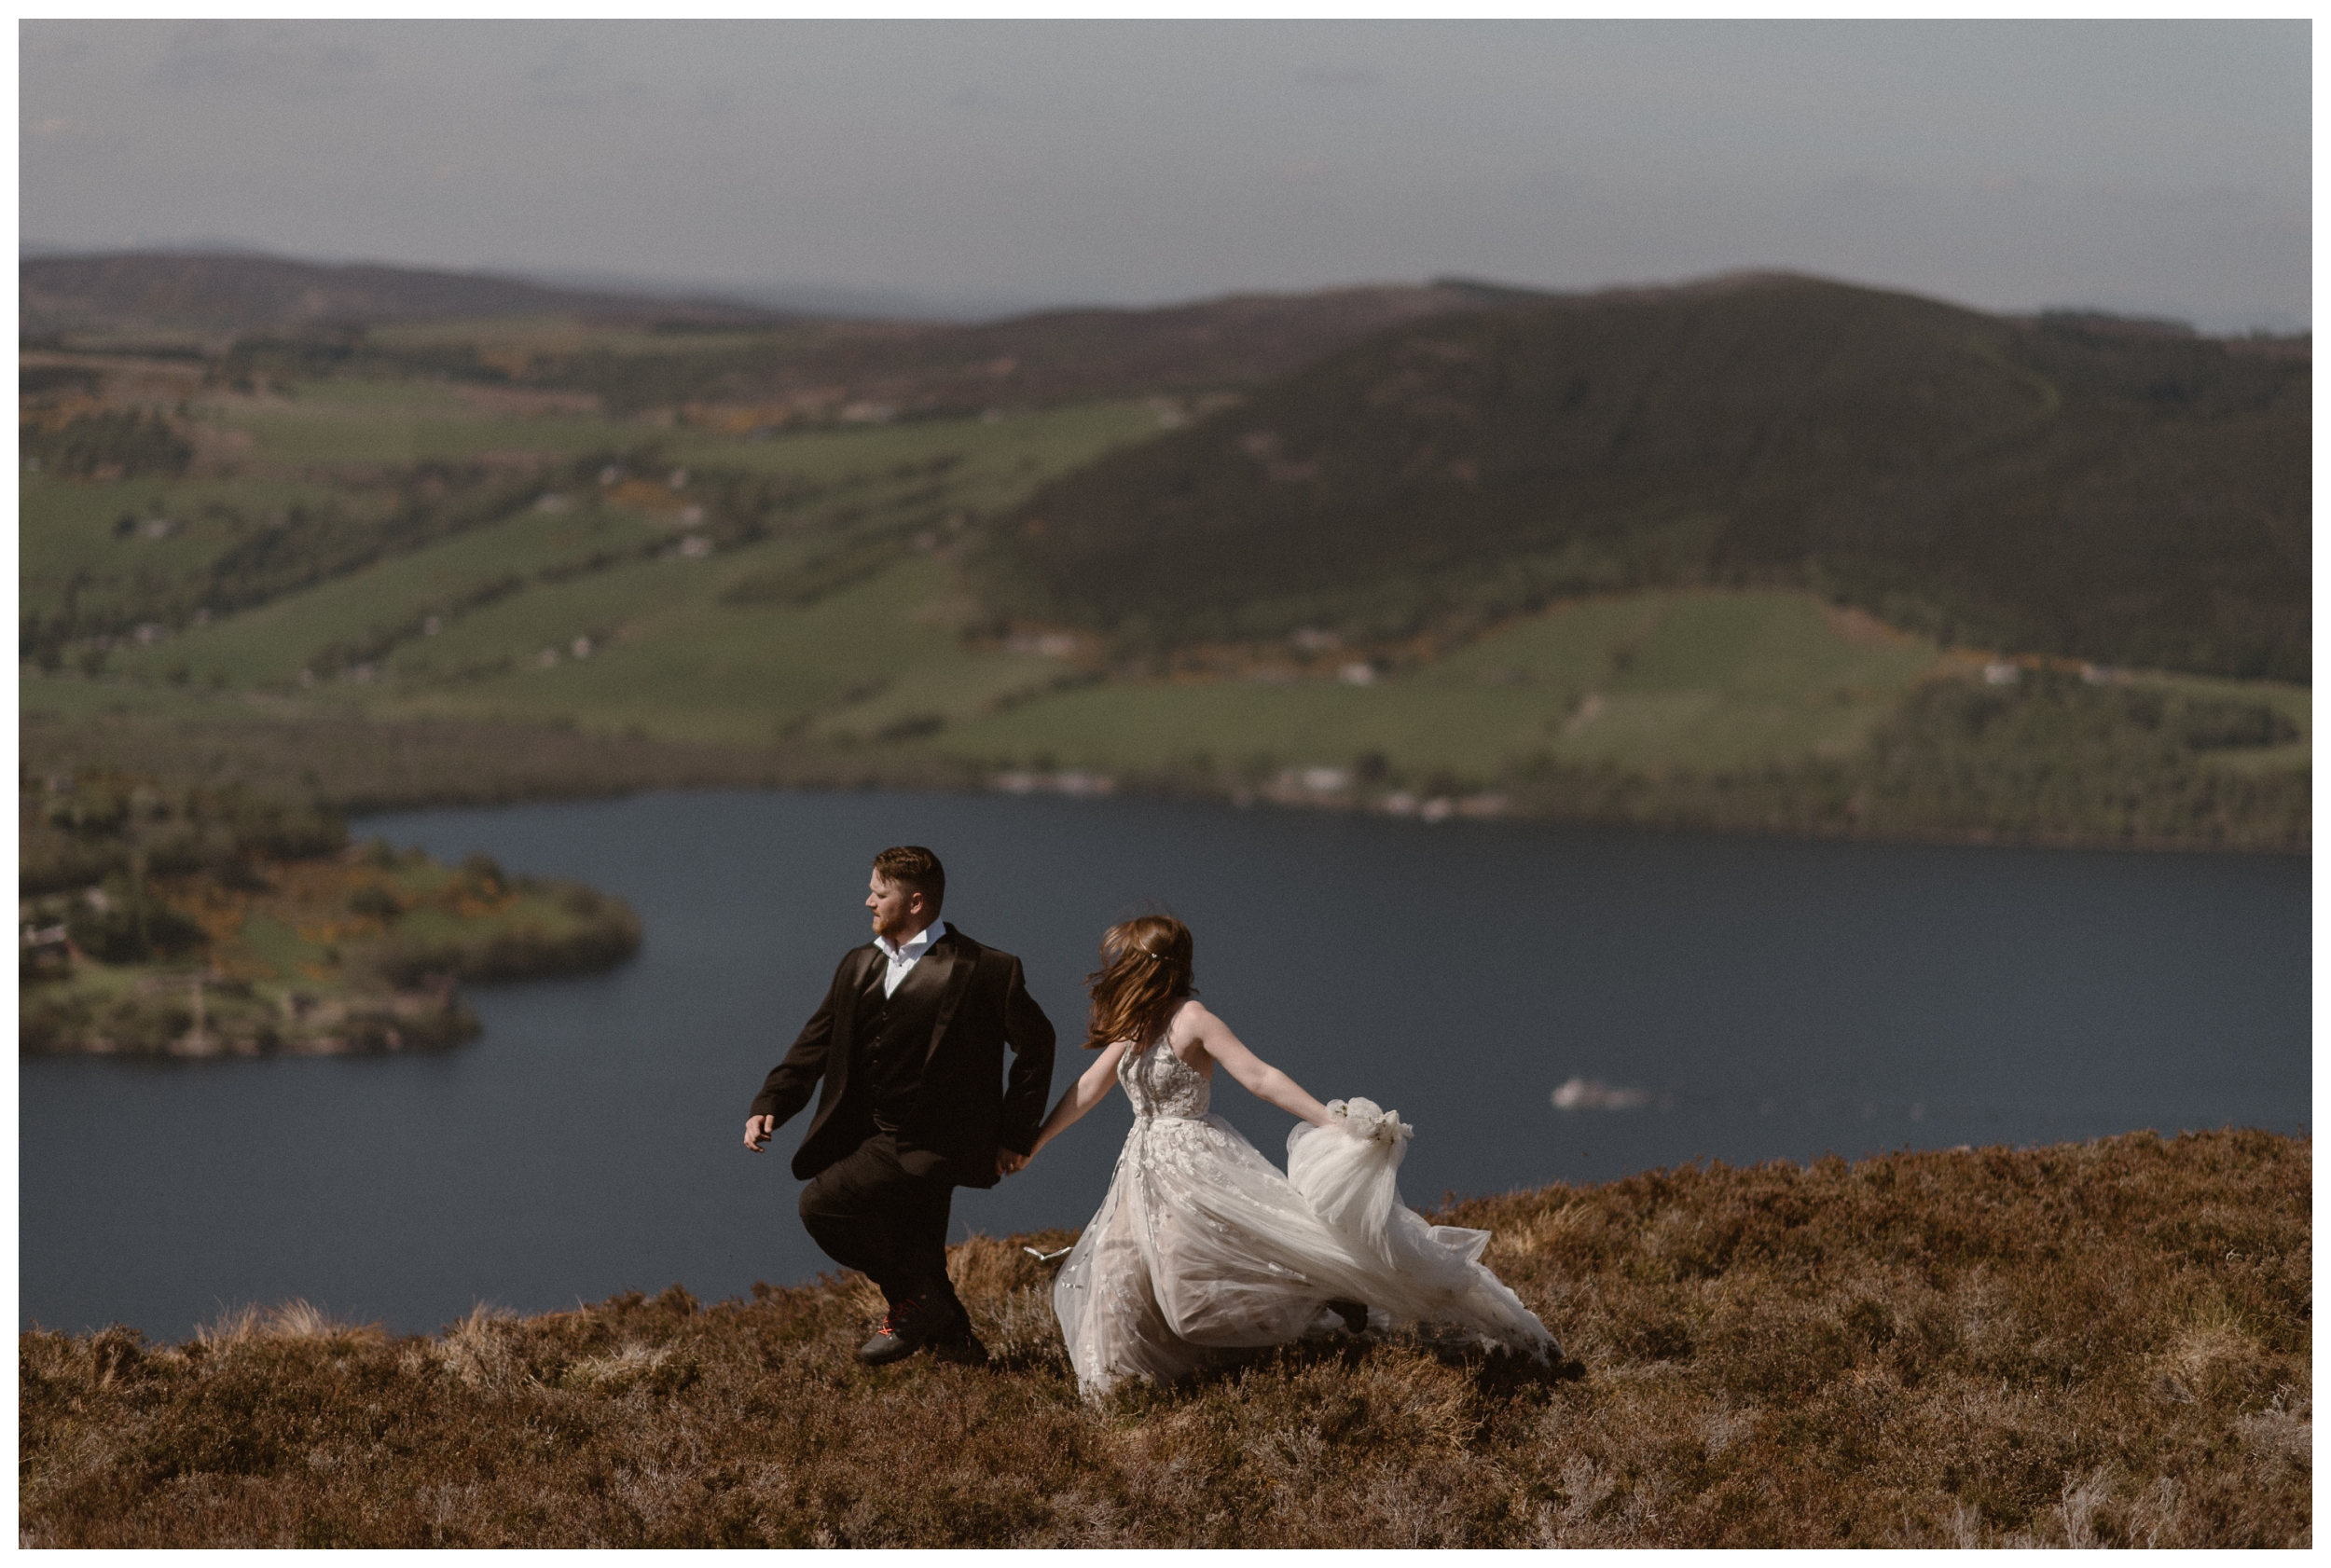 Elissa and Daniel love to explore together as a couple so traveling to the Scottish Highlands for their elopement ceremony made perfect sense for them. Photo by Maddie Mae, Adventure Instead.